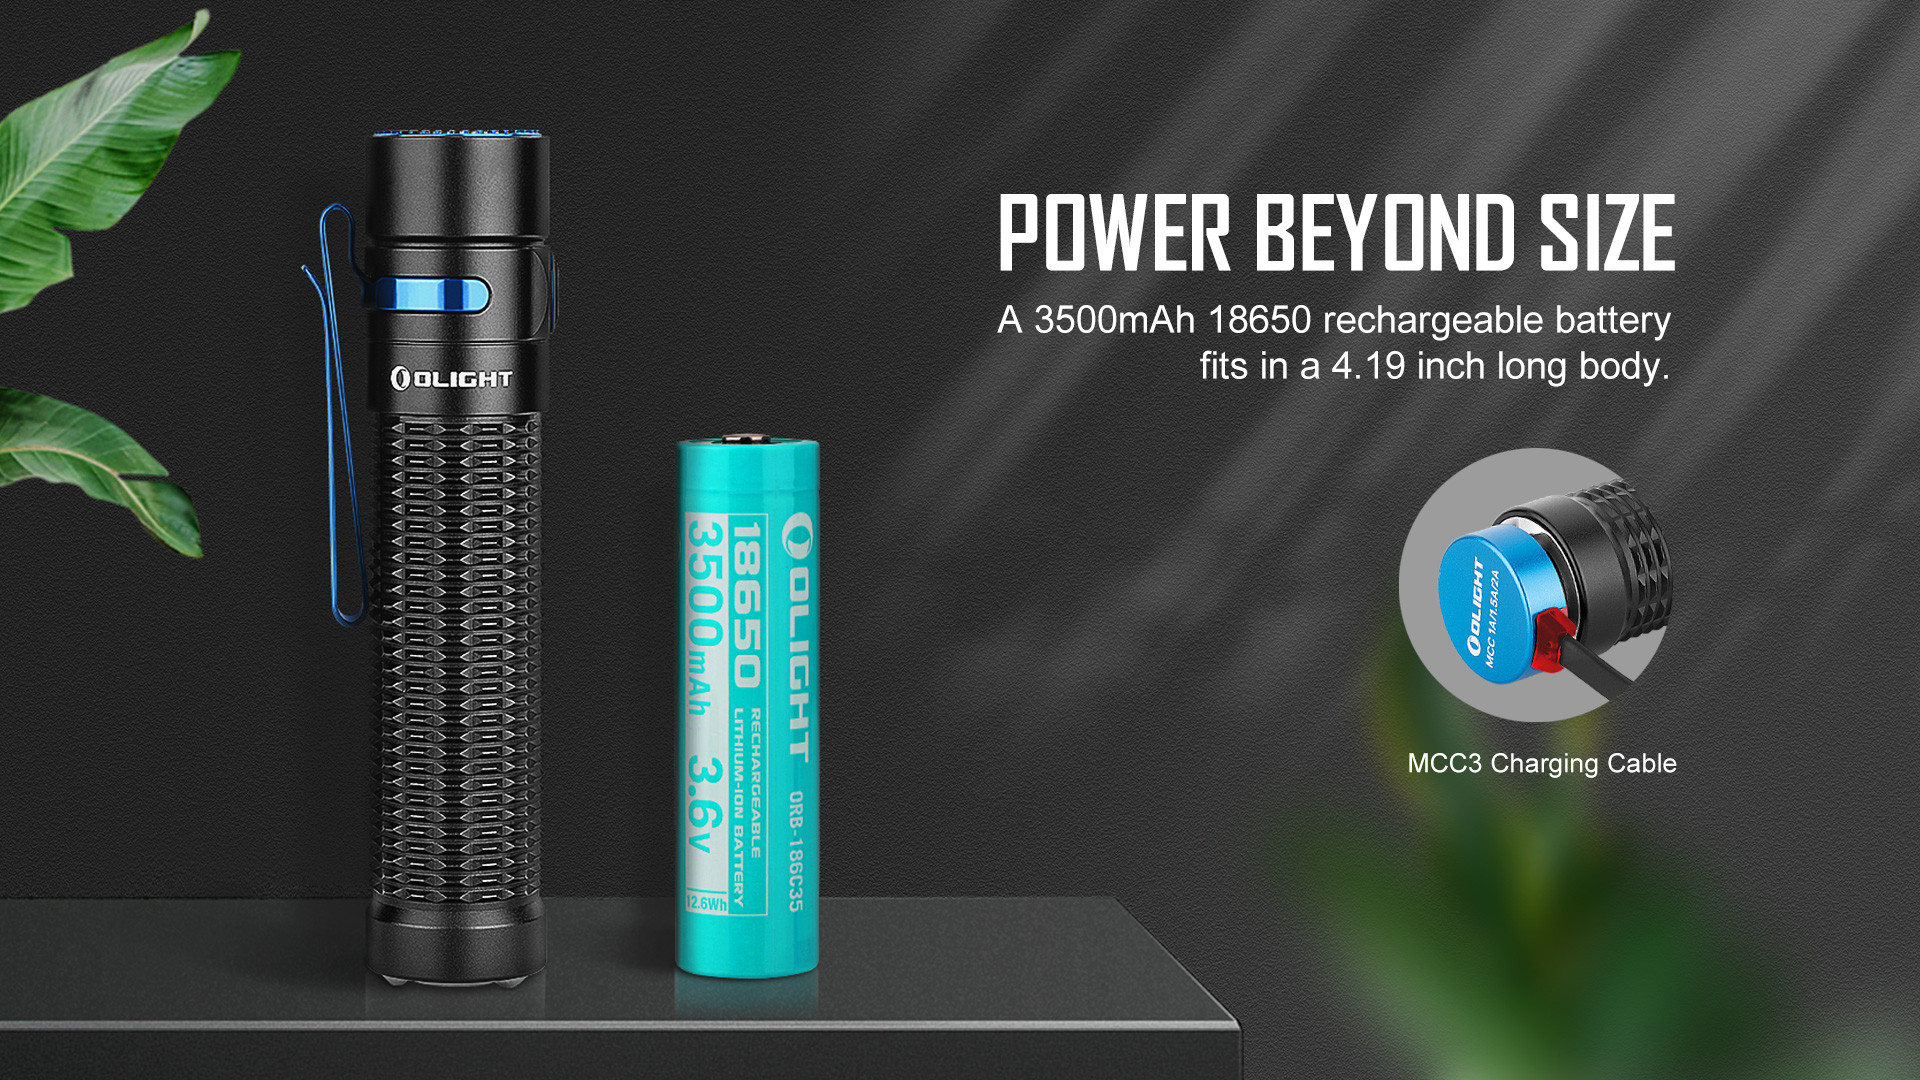 Compact size with large-capacity battery tactical flashlight